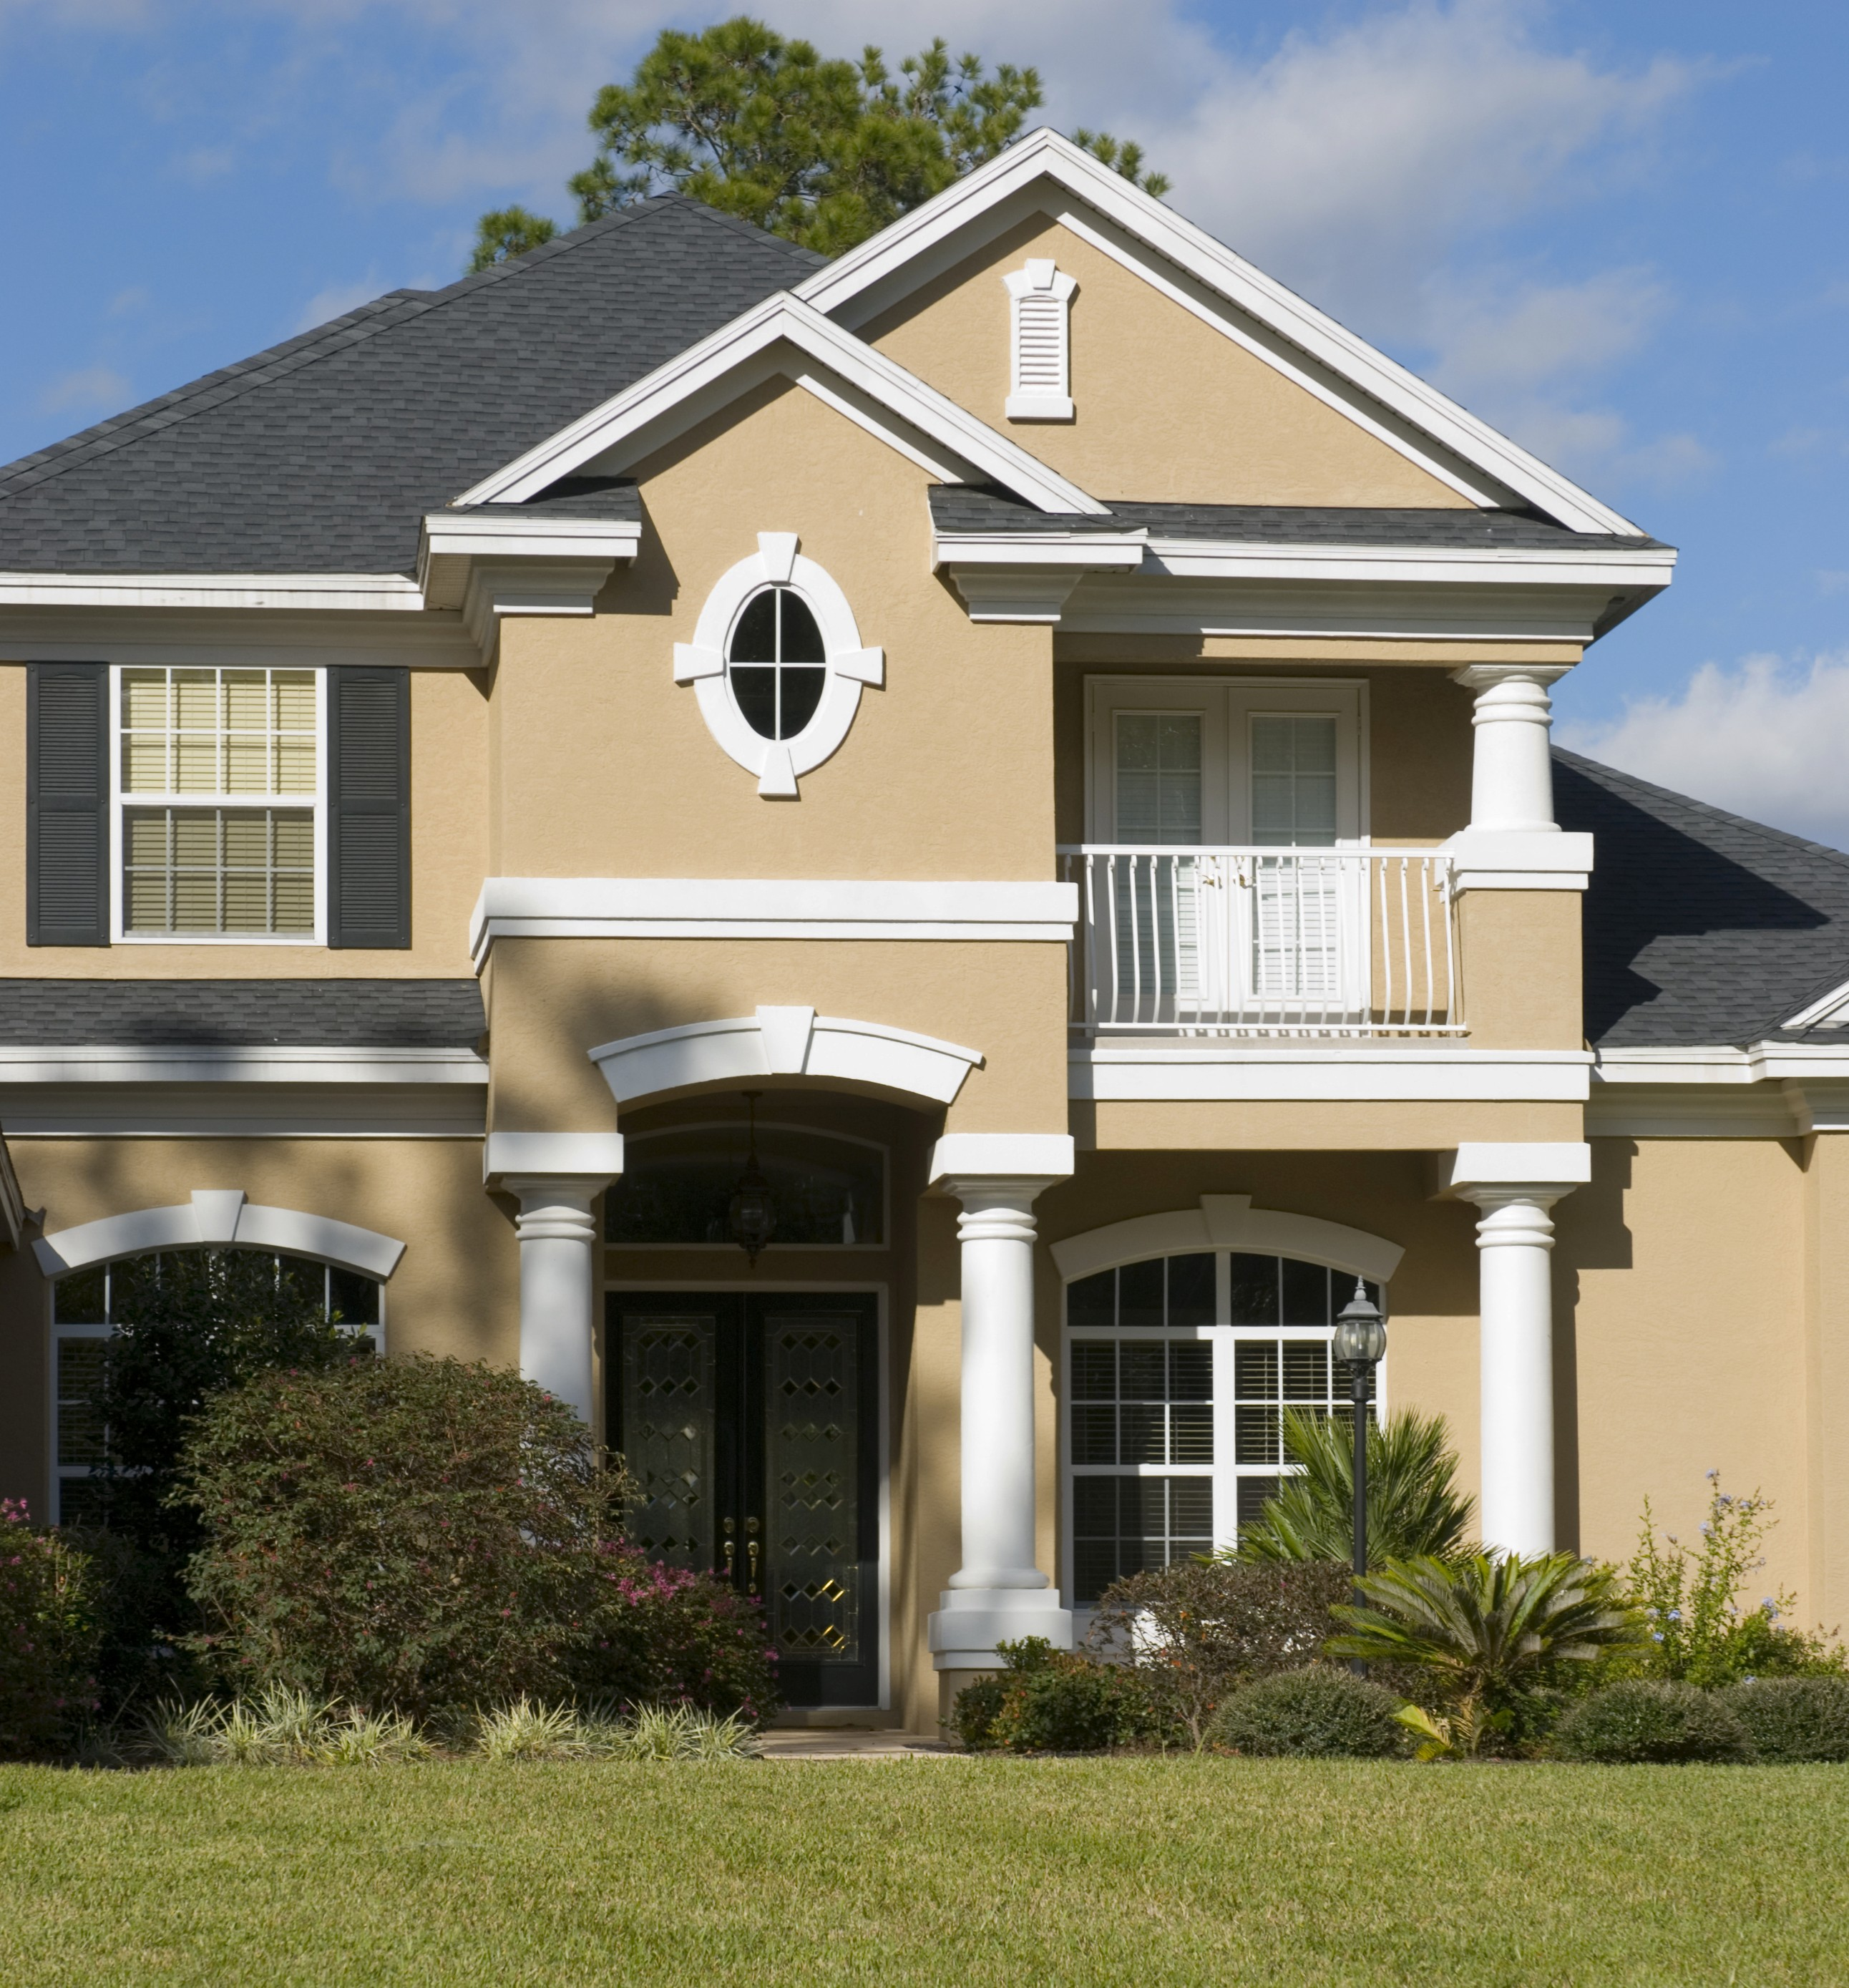 Exterior paint colors rustic homes - a breath of fresh air ... on Painting Ideas For House  id=57688